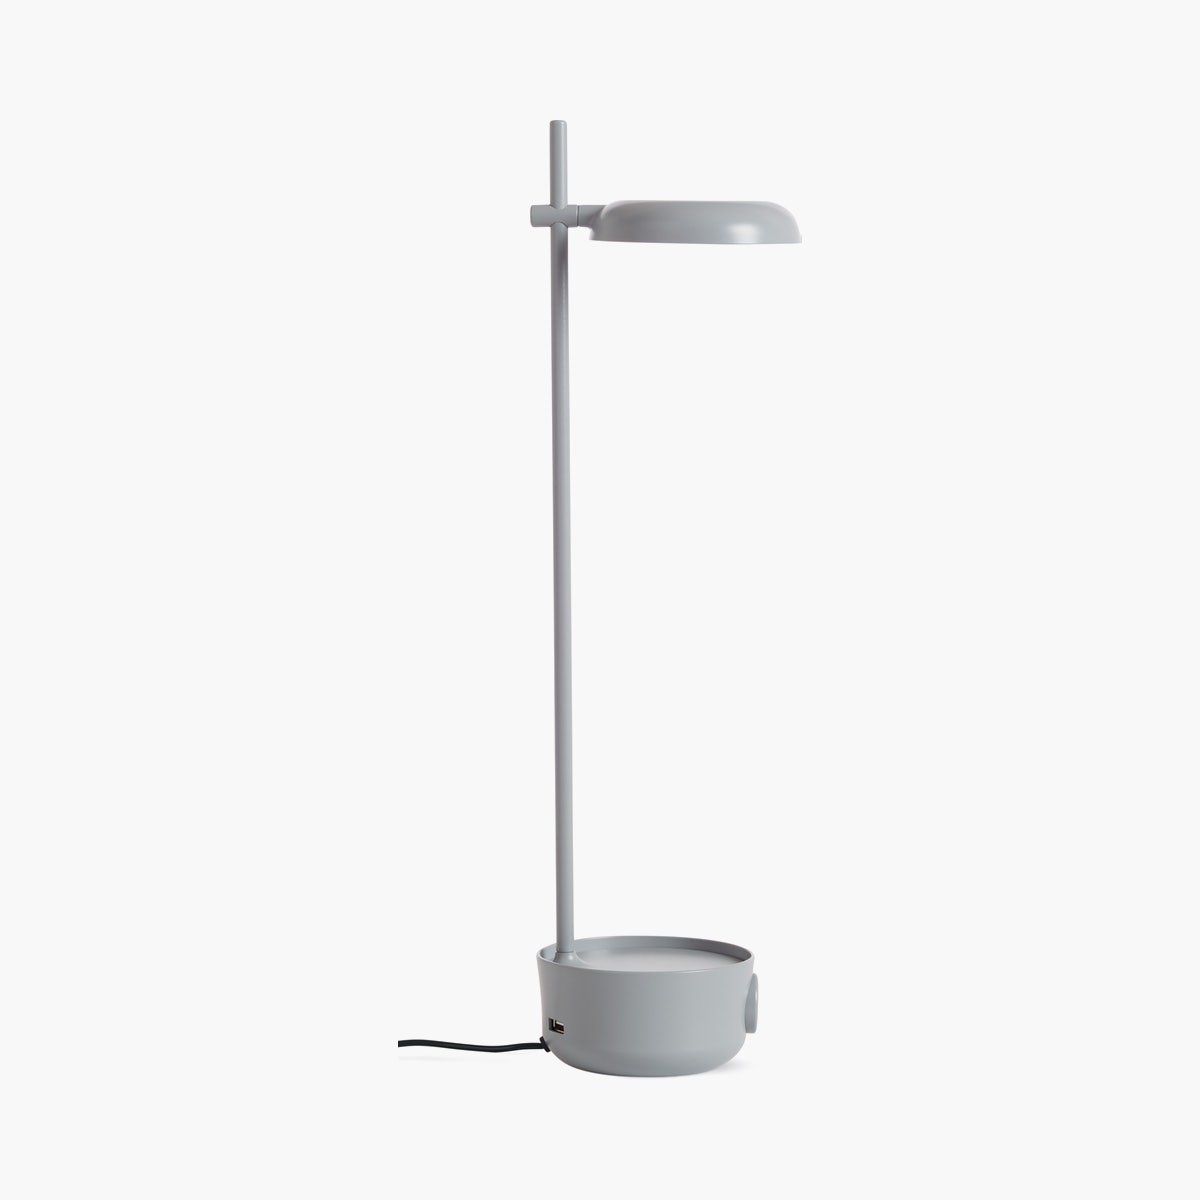 Focal LED Lamp with USB Port